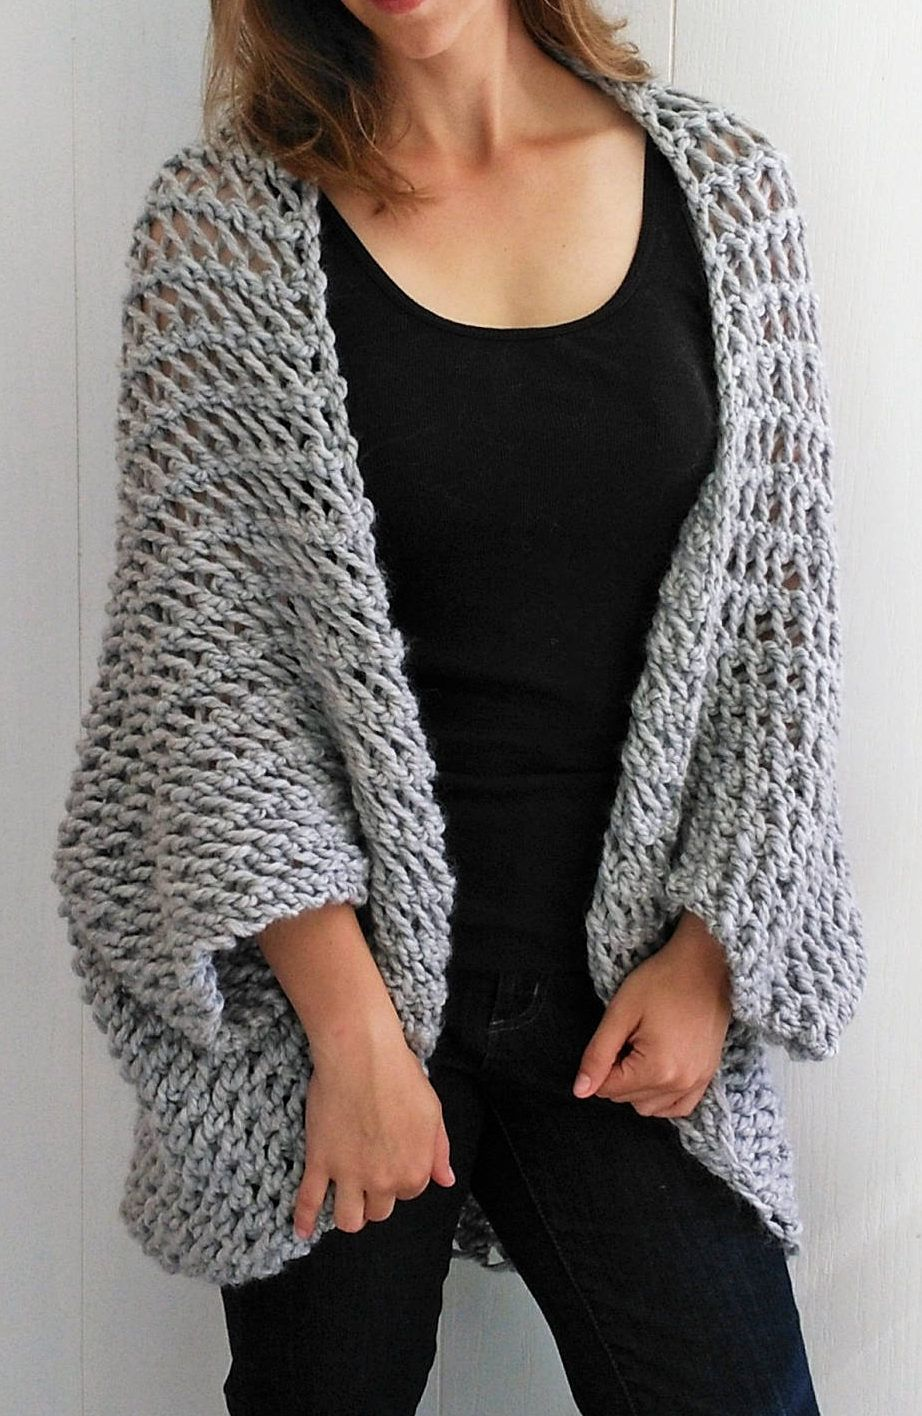 Easy Shrug Knitting Patterns | Pinterest | Super bulky yarn, Easy ...